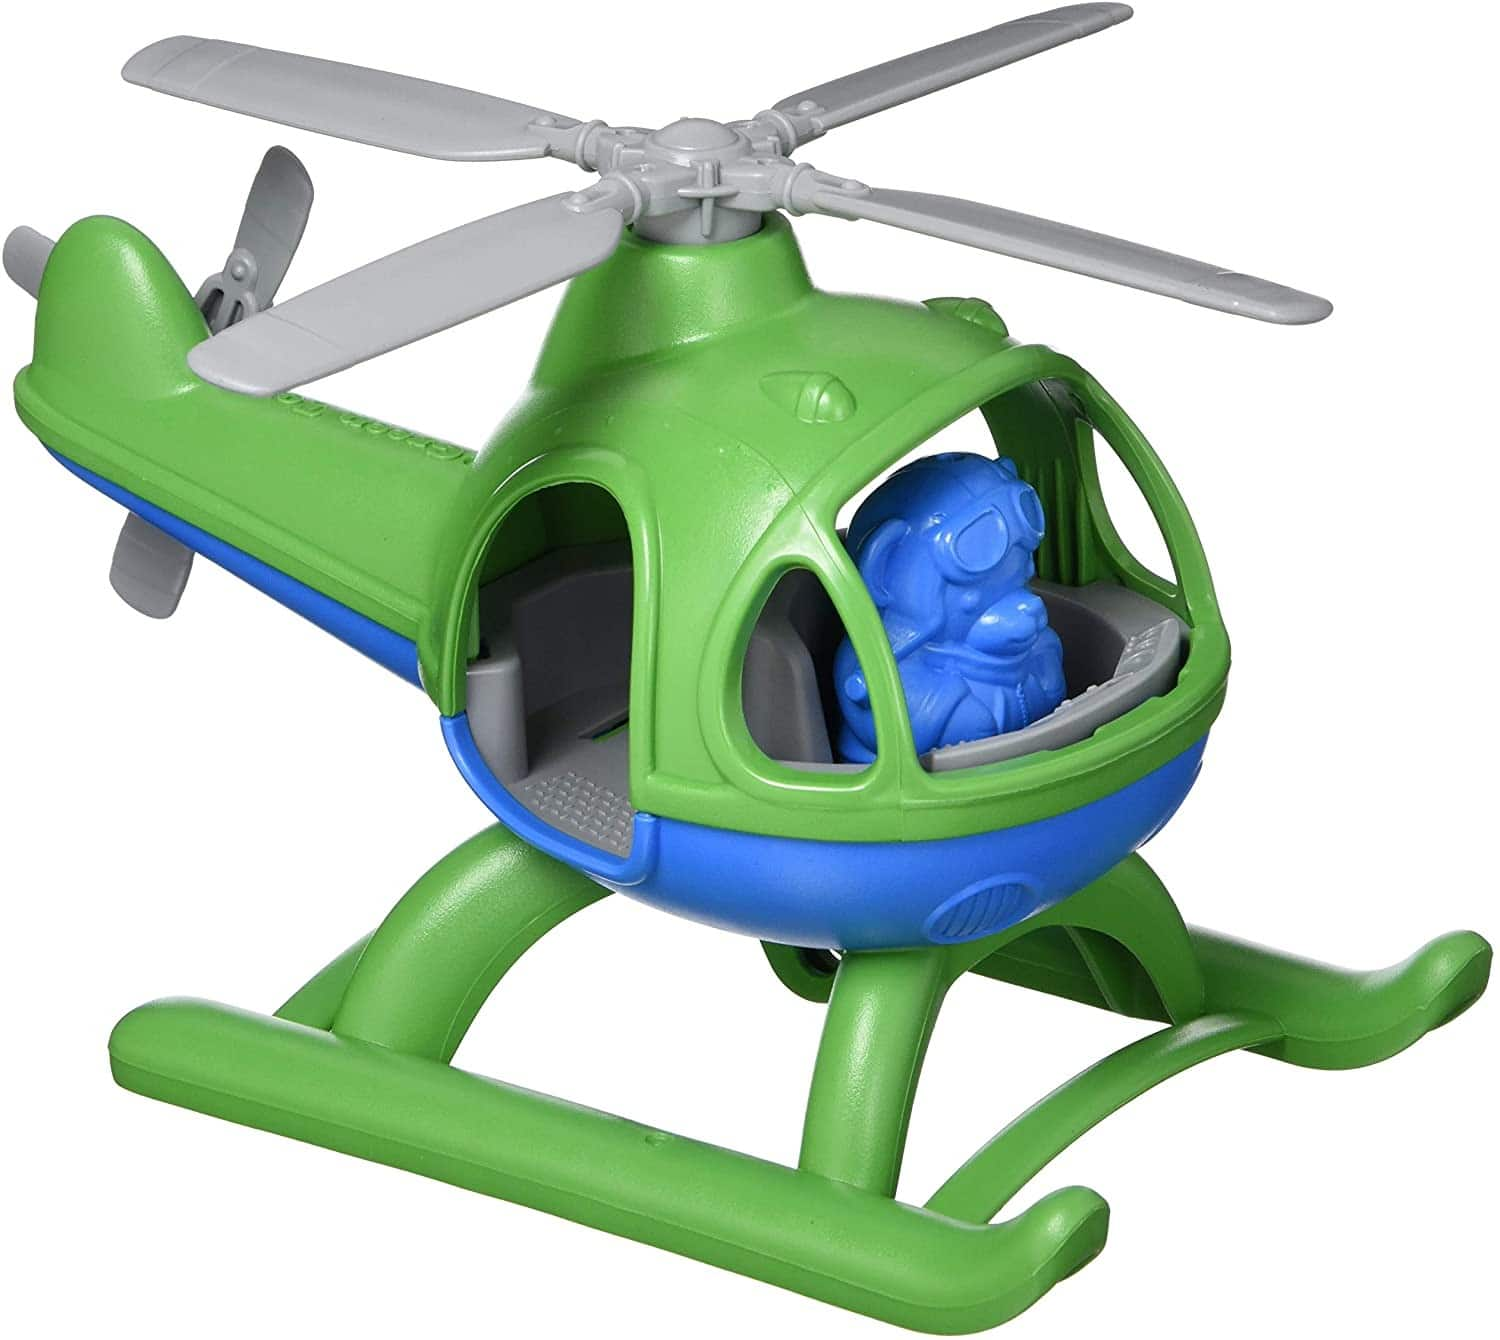 Green Toys Helicopter w/ Pilot Bear Figure $8.96 + FS w/ Prime or on orders of $25+